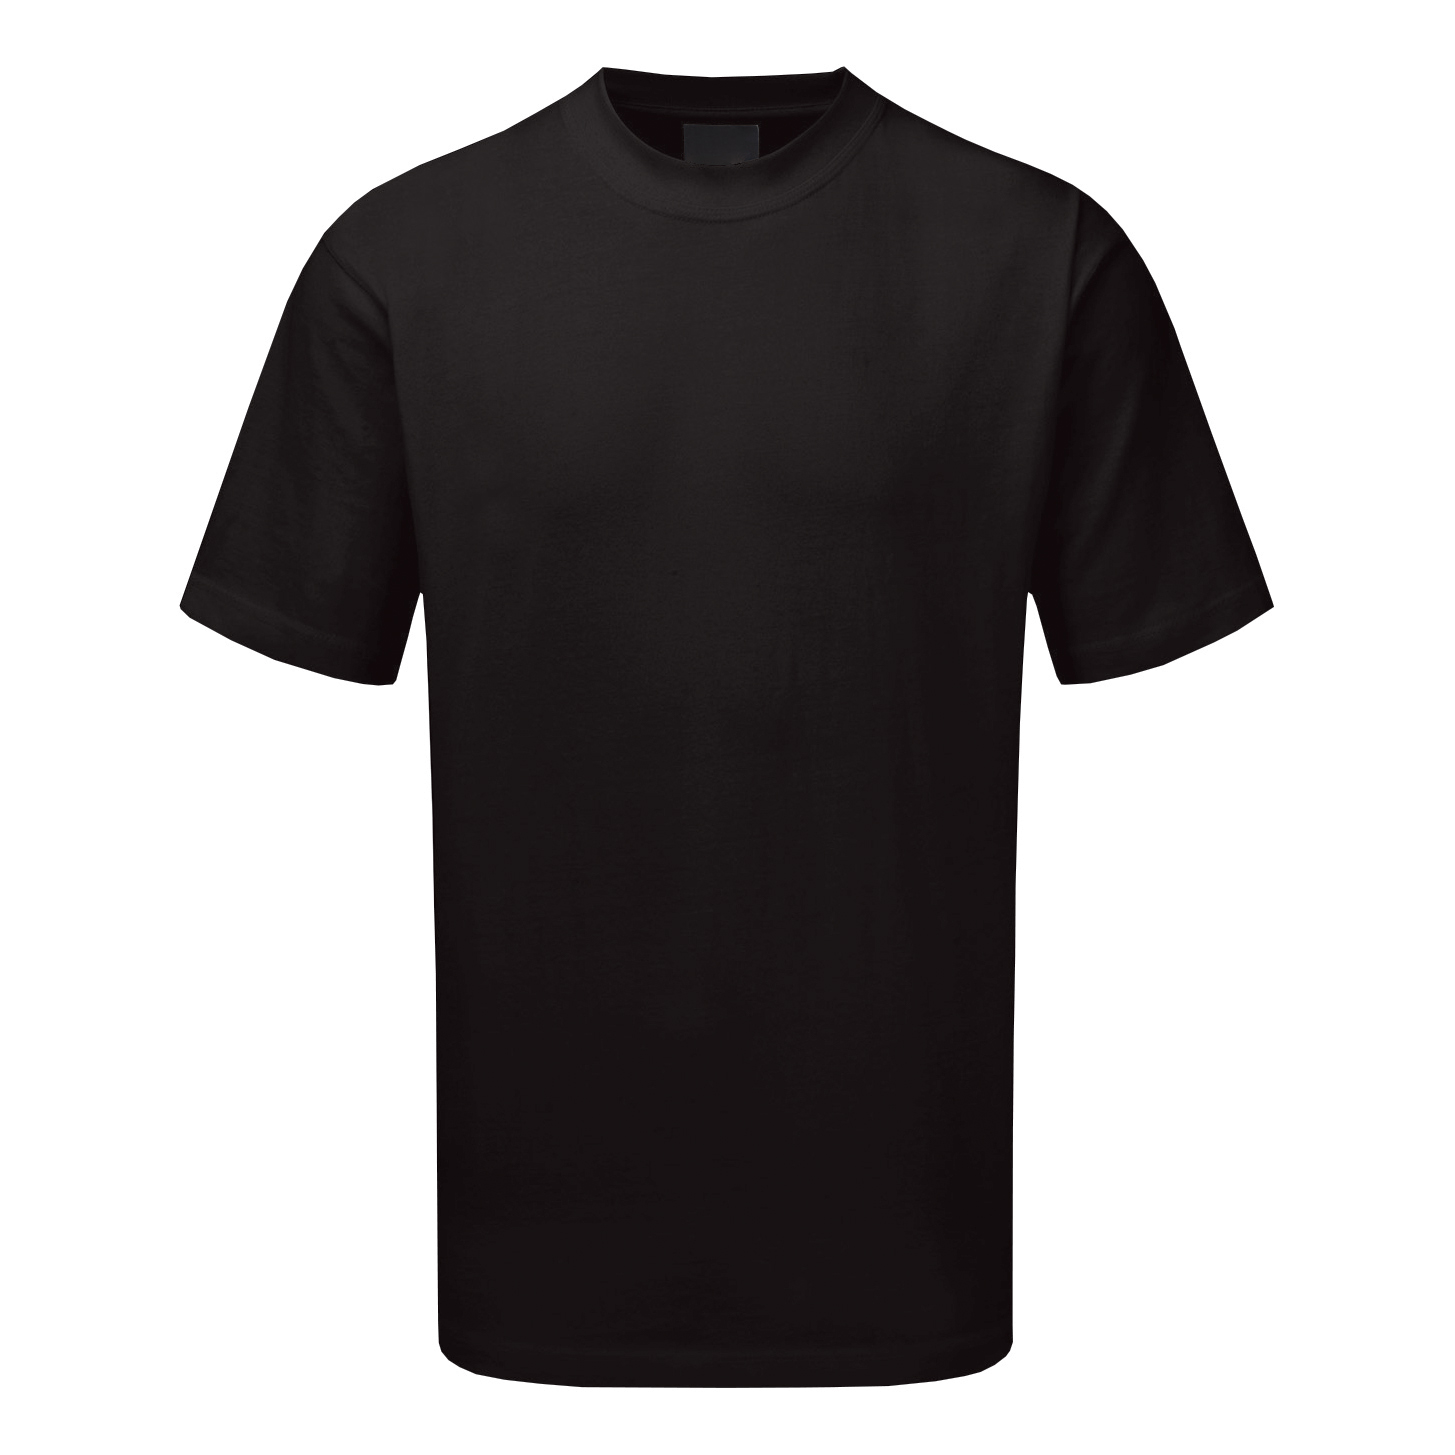 Business T Shirt Premium Polycotton Triple Stitched Size Small Black